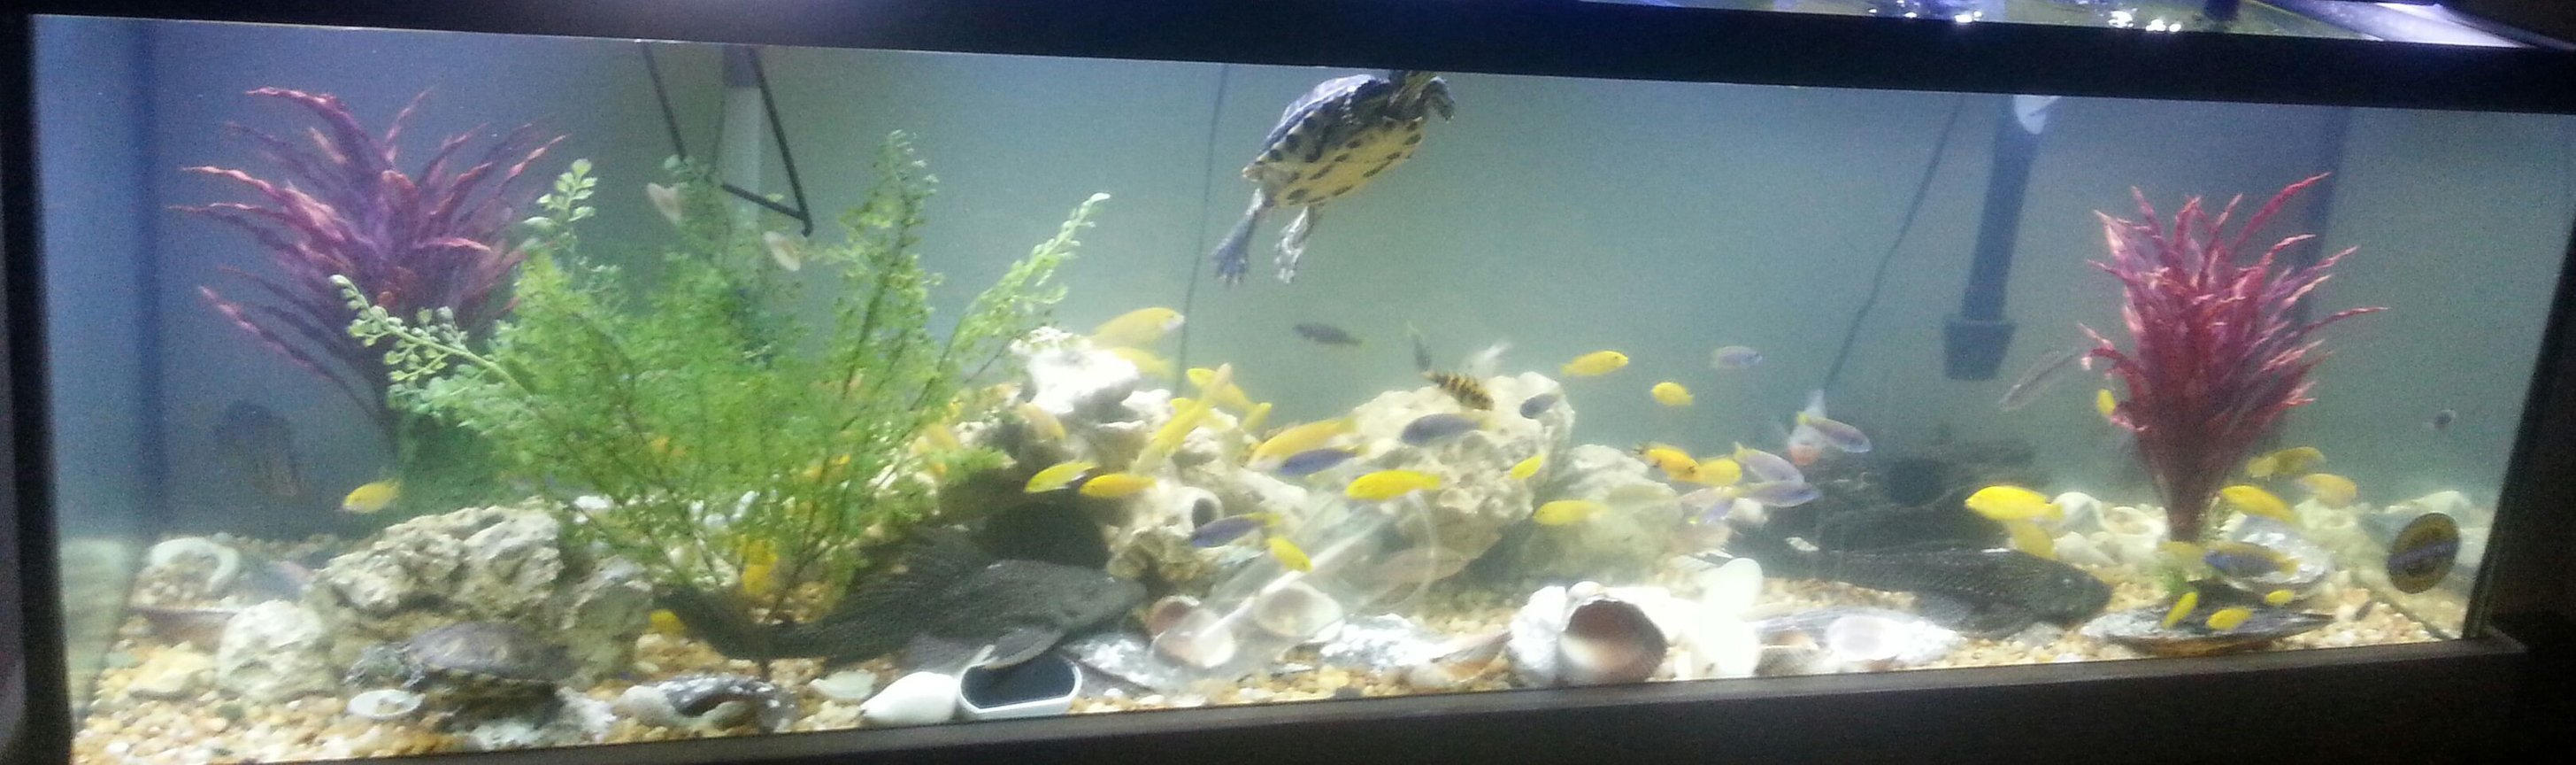 fish tank picture - Fun